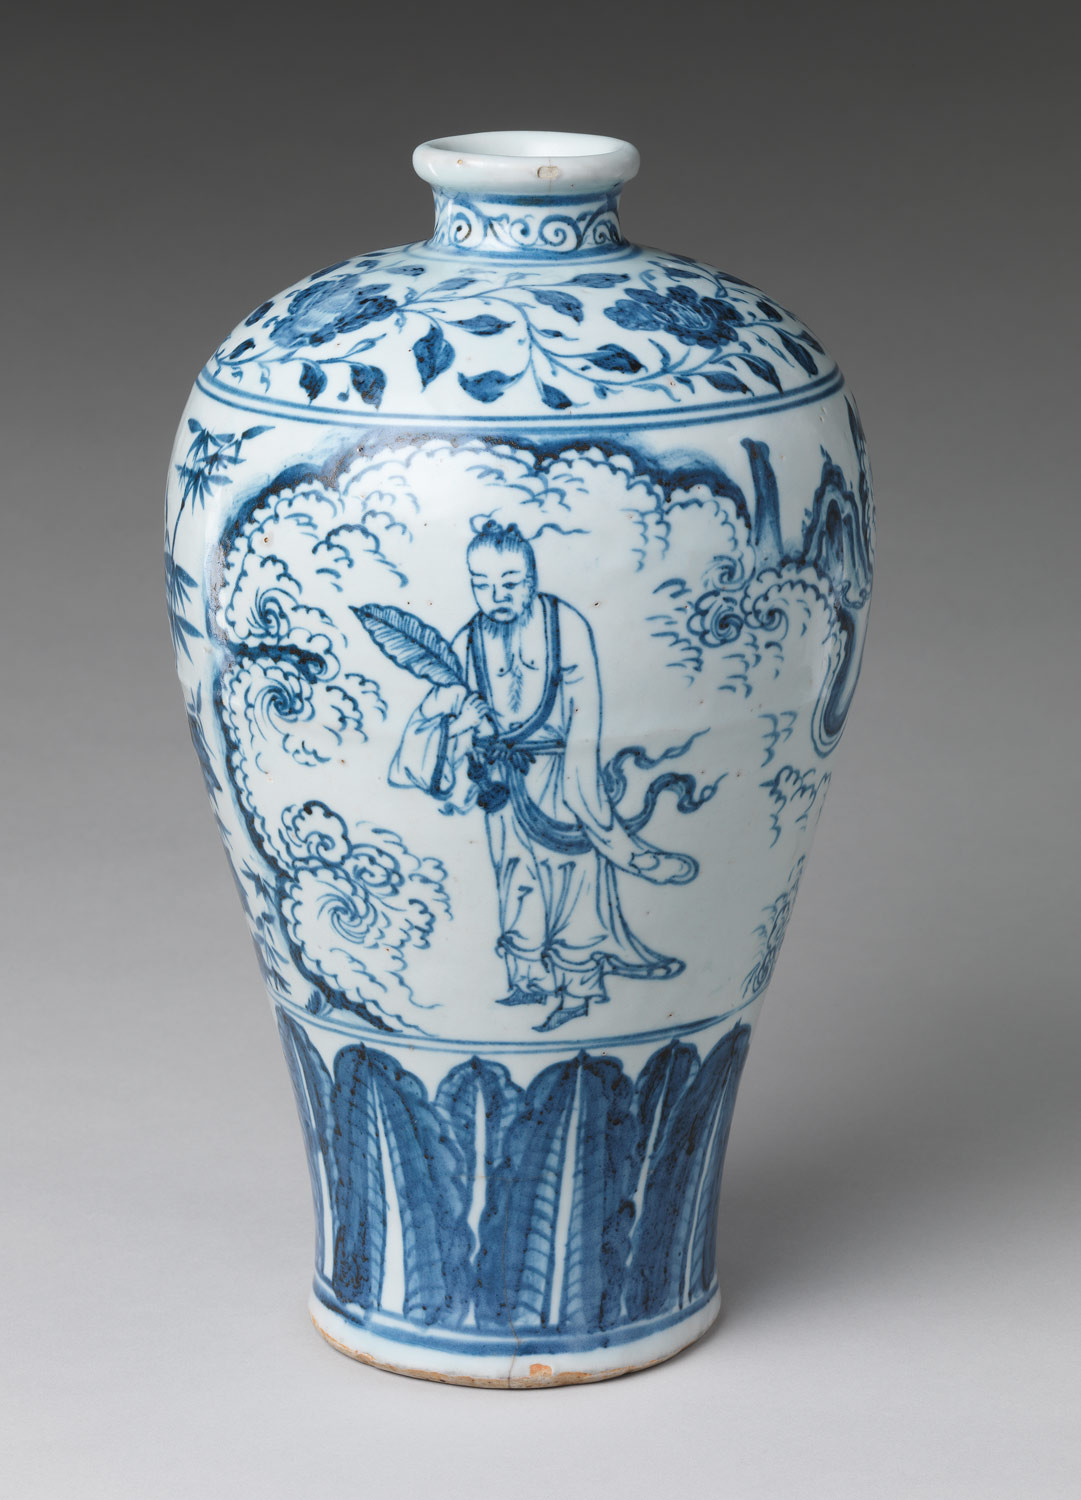 white ceramic deer head vase of daoism and daoist art essay heilbrunn timeline of art history with vase in meiping shape with daoist immortal zhongli quan